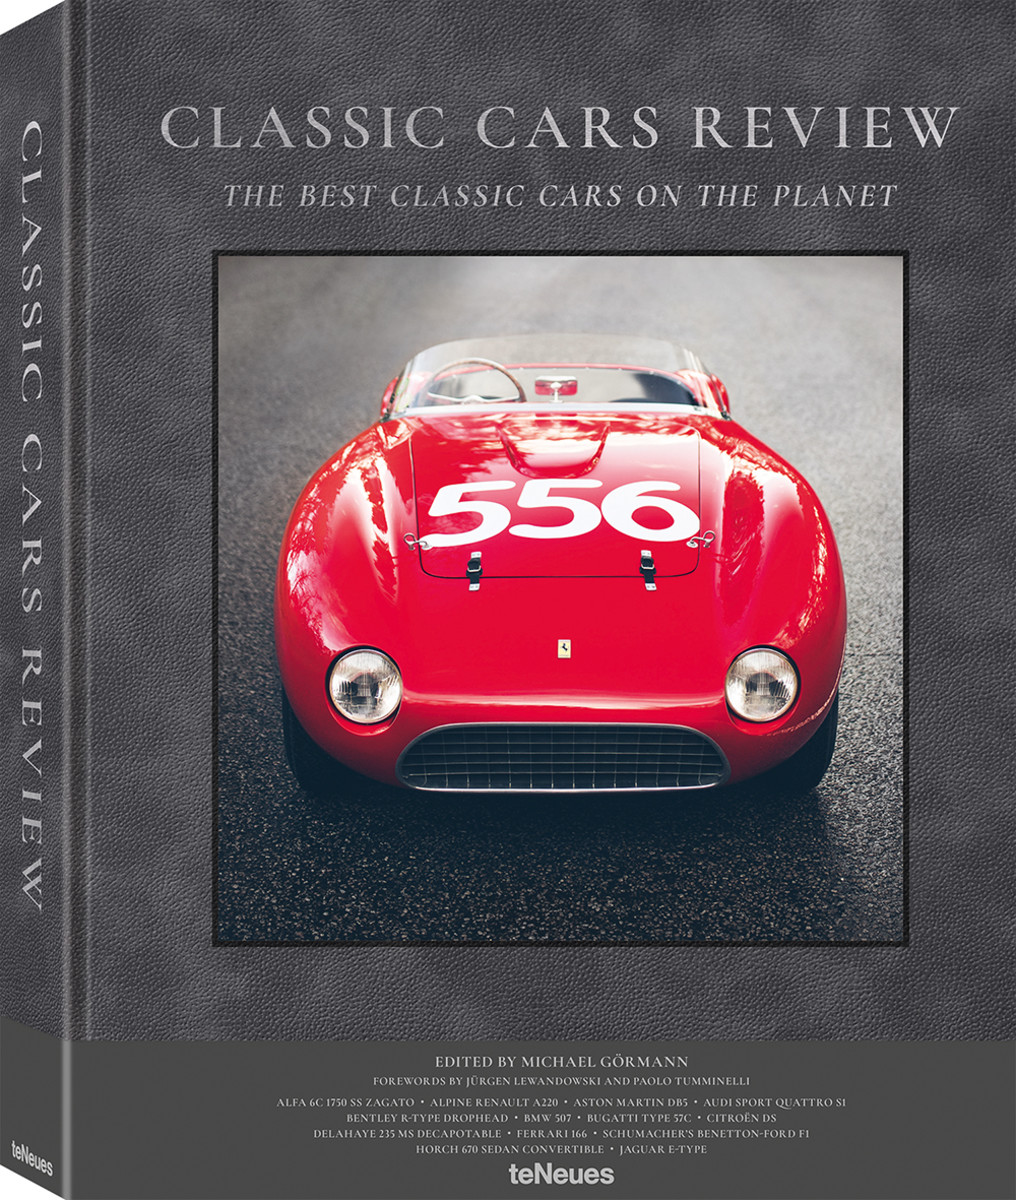 This Coffee Table Book Is A Stunning Ode To Clic Cars